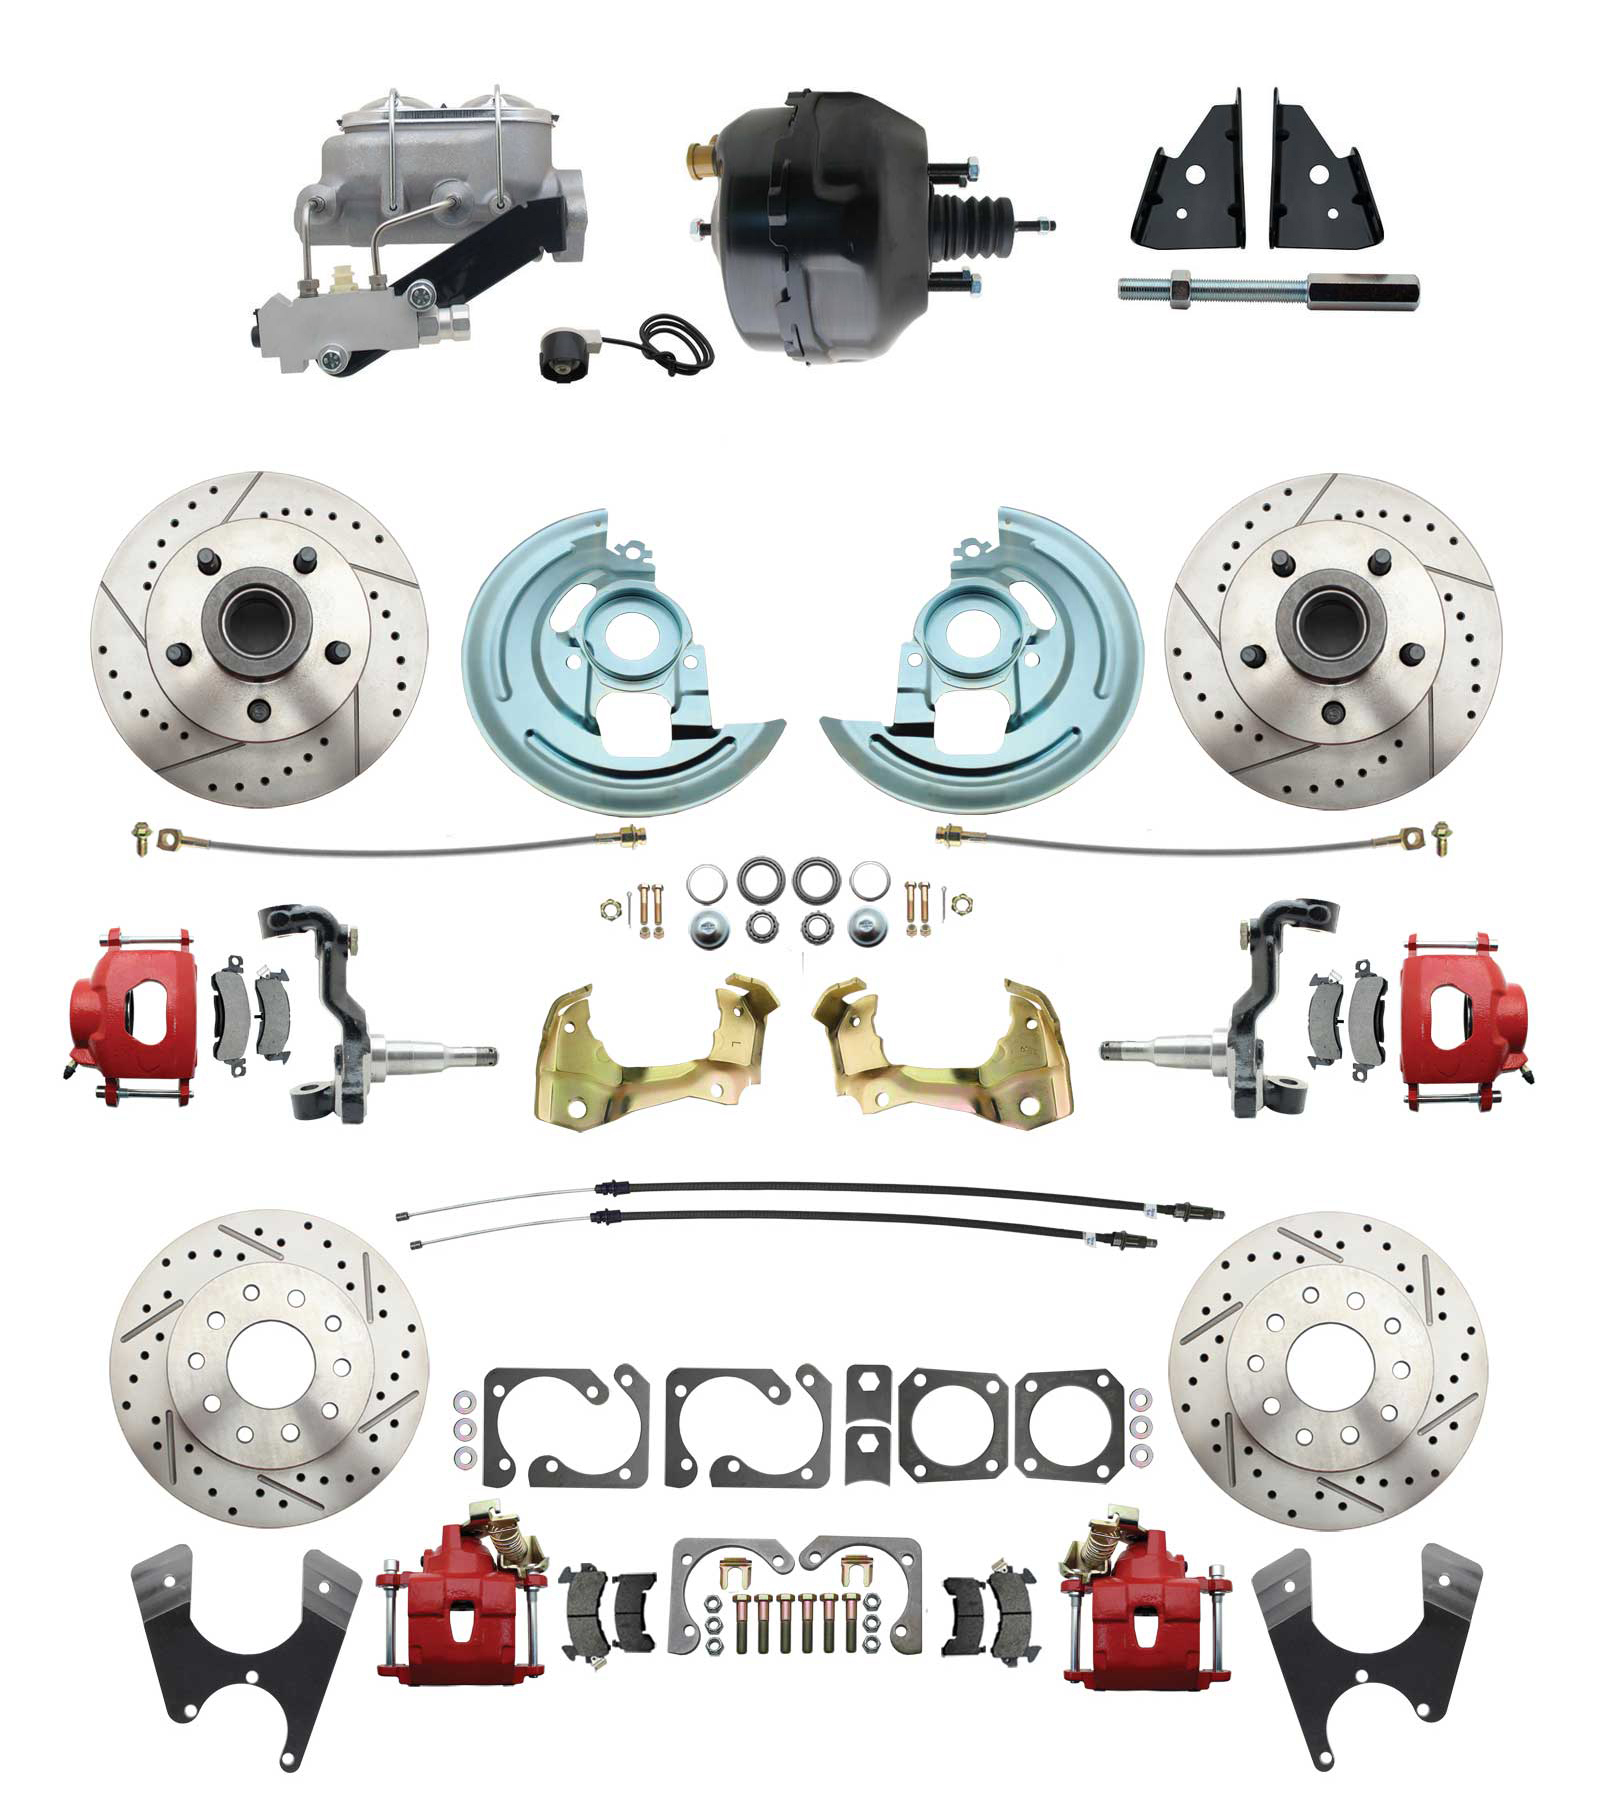 1967-1969 Camaro/ Firebird & 1968-1974 Chevy Nova Front & Rear Power Disc Brake Conversion Kit Drilled & Slotted & Powder Coated Red Calipers Rotors 9 Dual Powder Coated Black Booster Kit